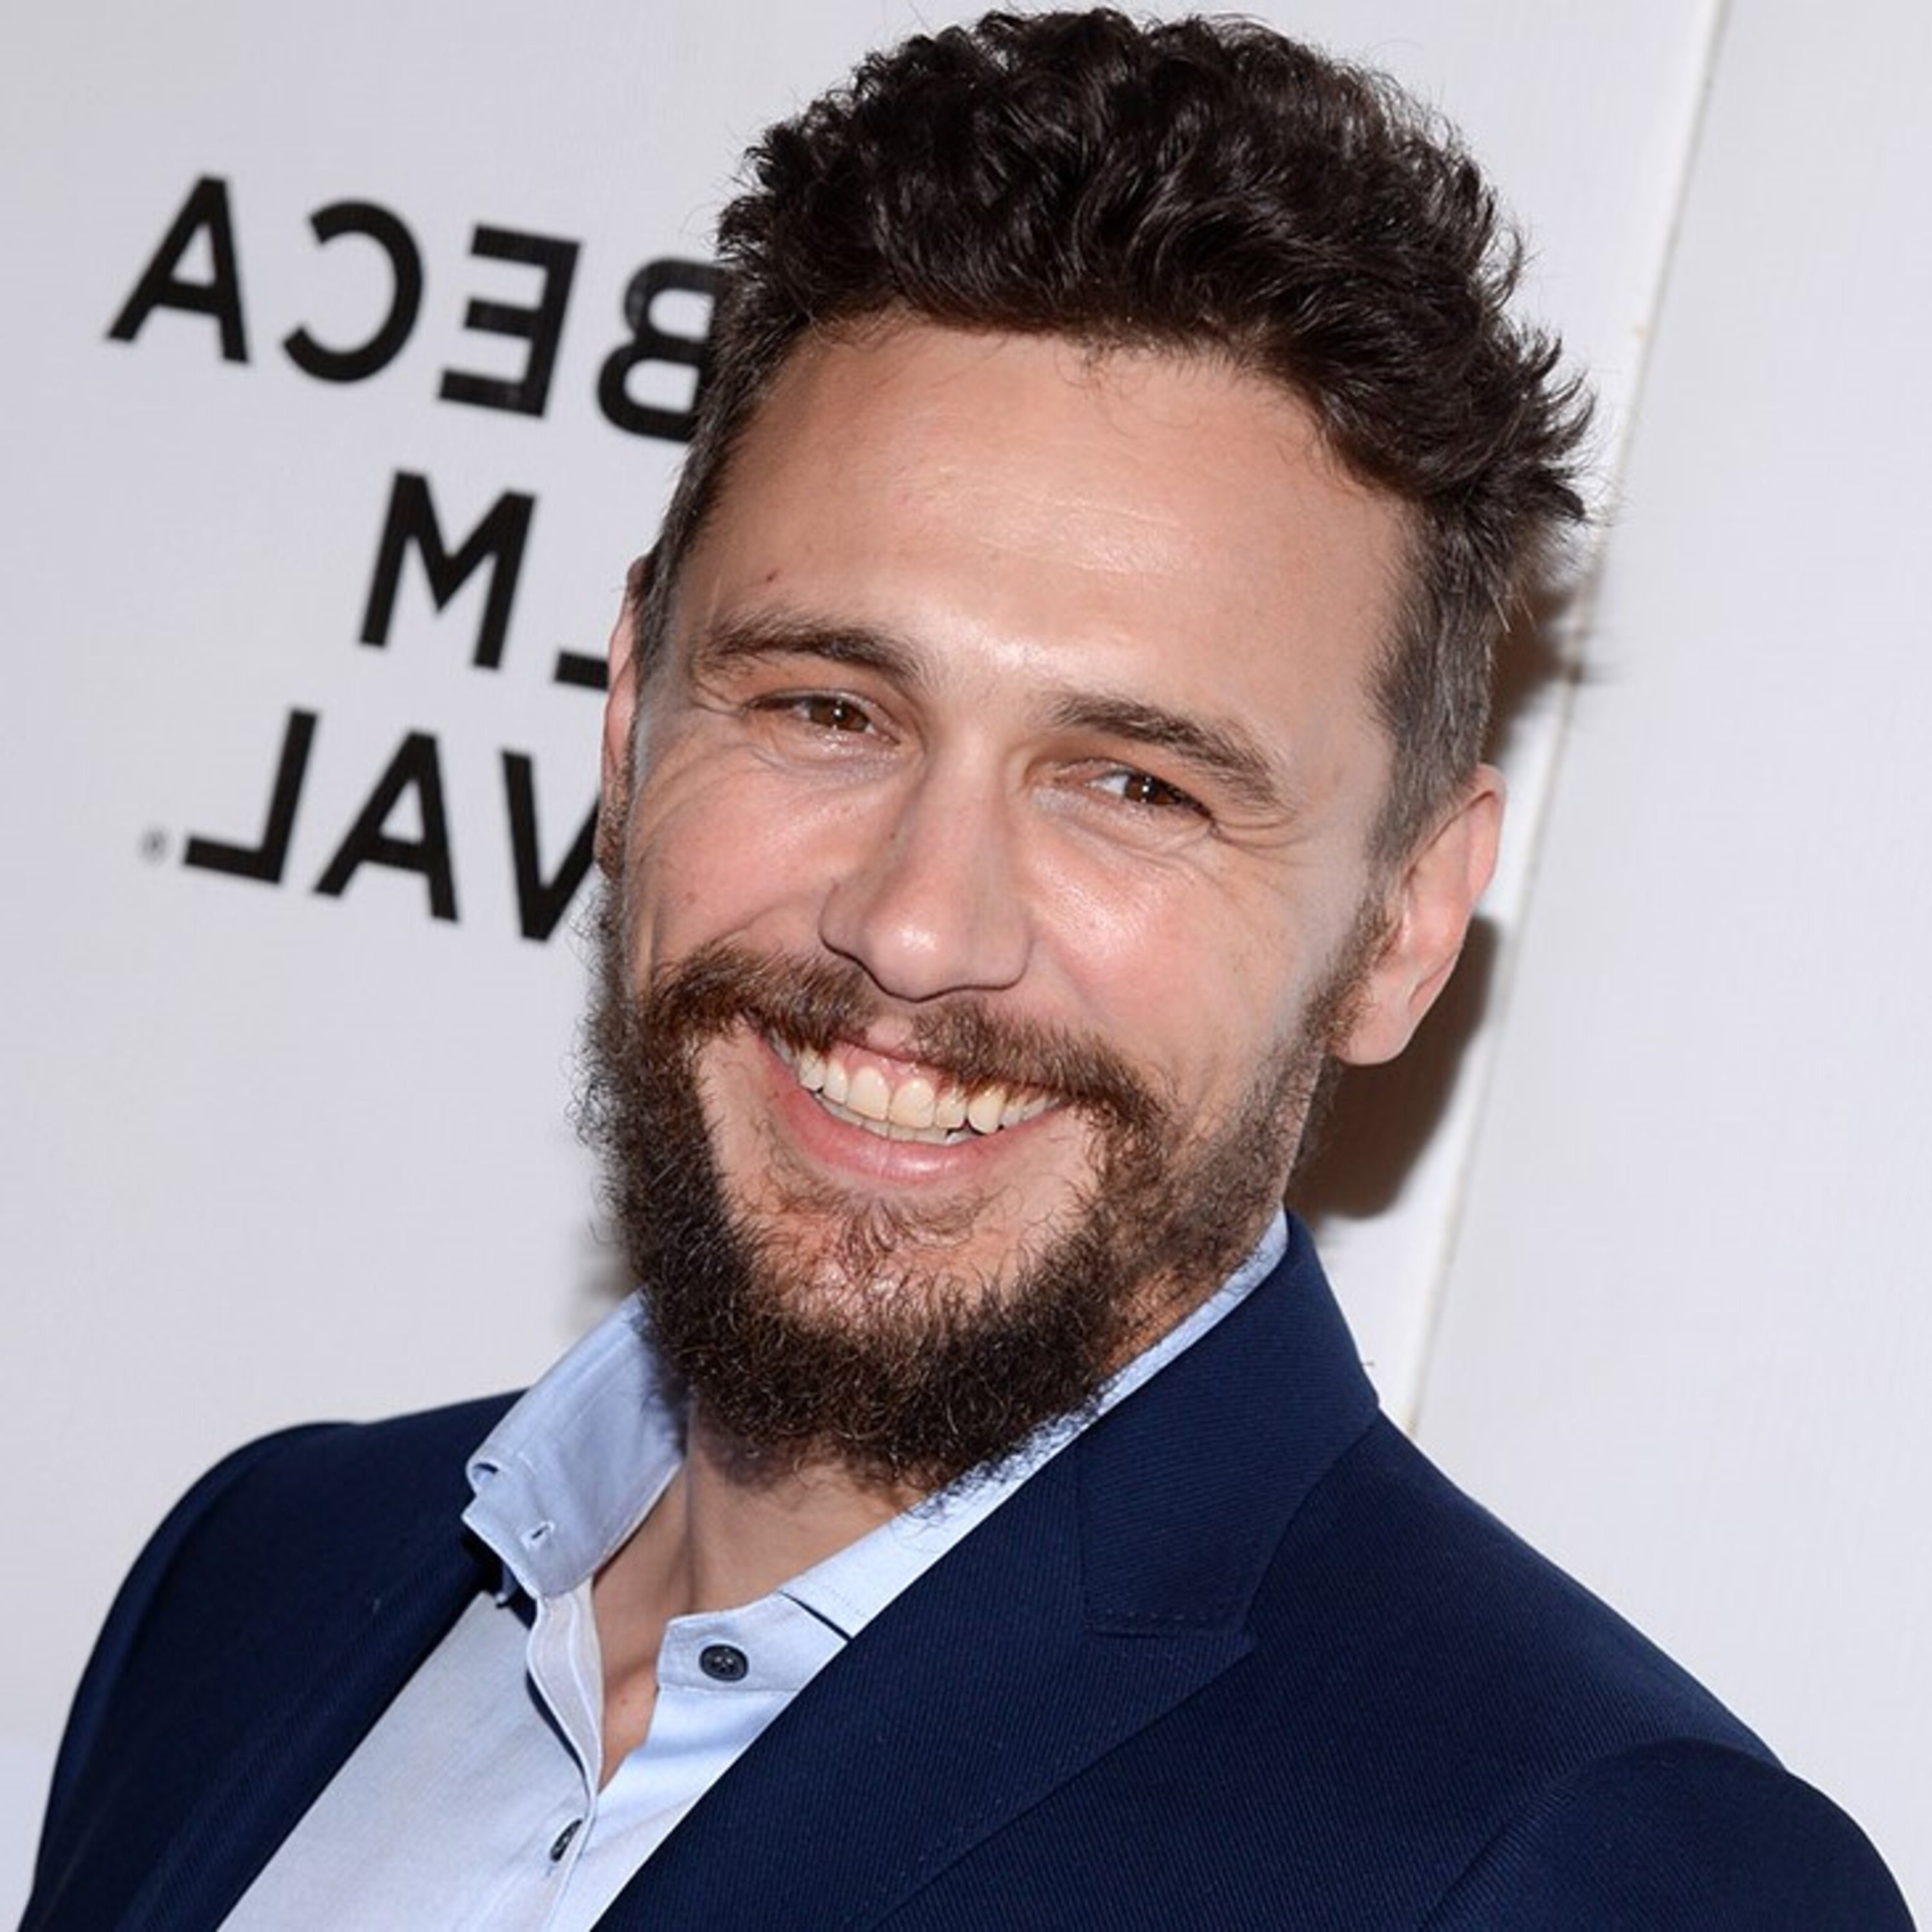 A full beard in the style of James Franco.